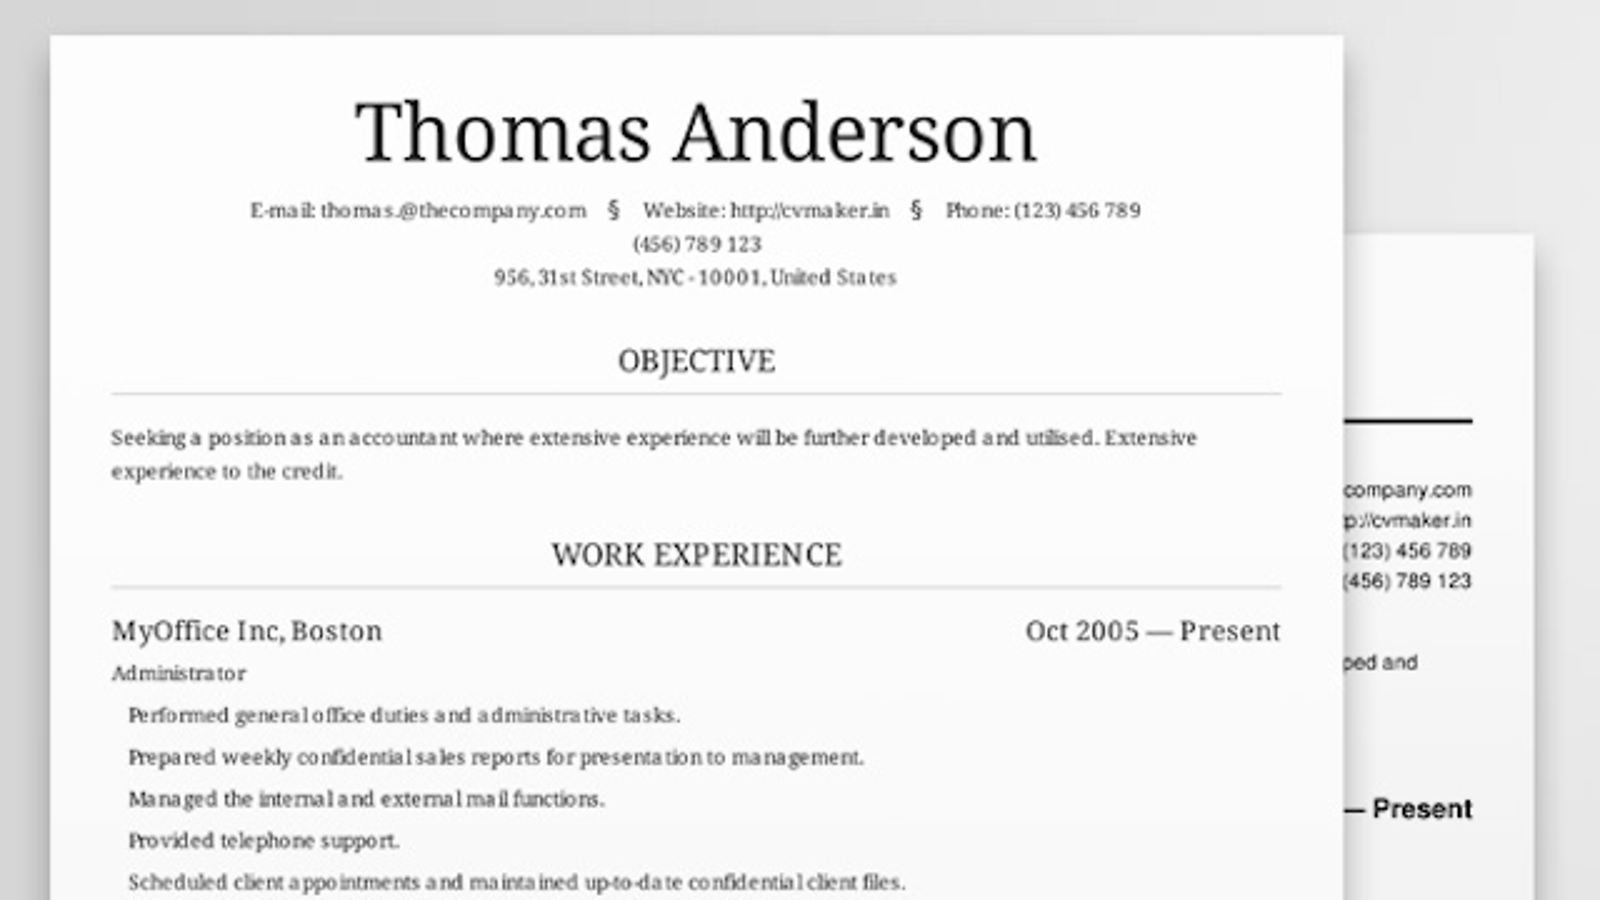 CV Maker Creates Beautiful Professional Looking Resumes Online In Minutes